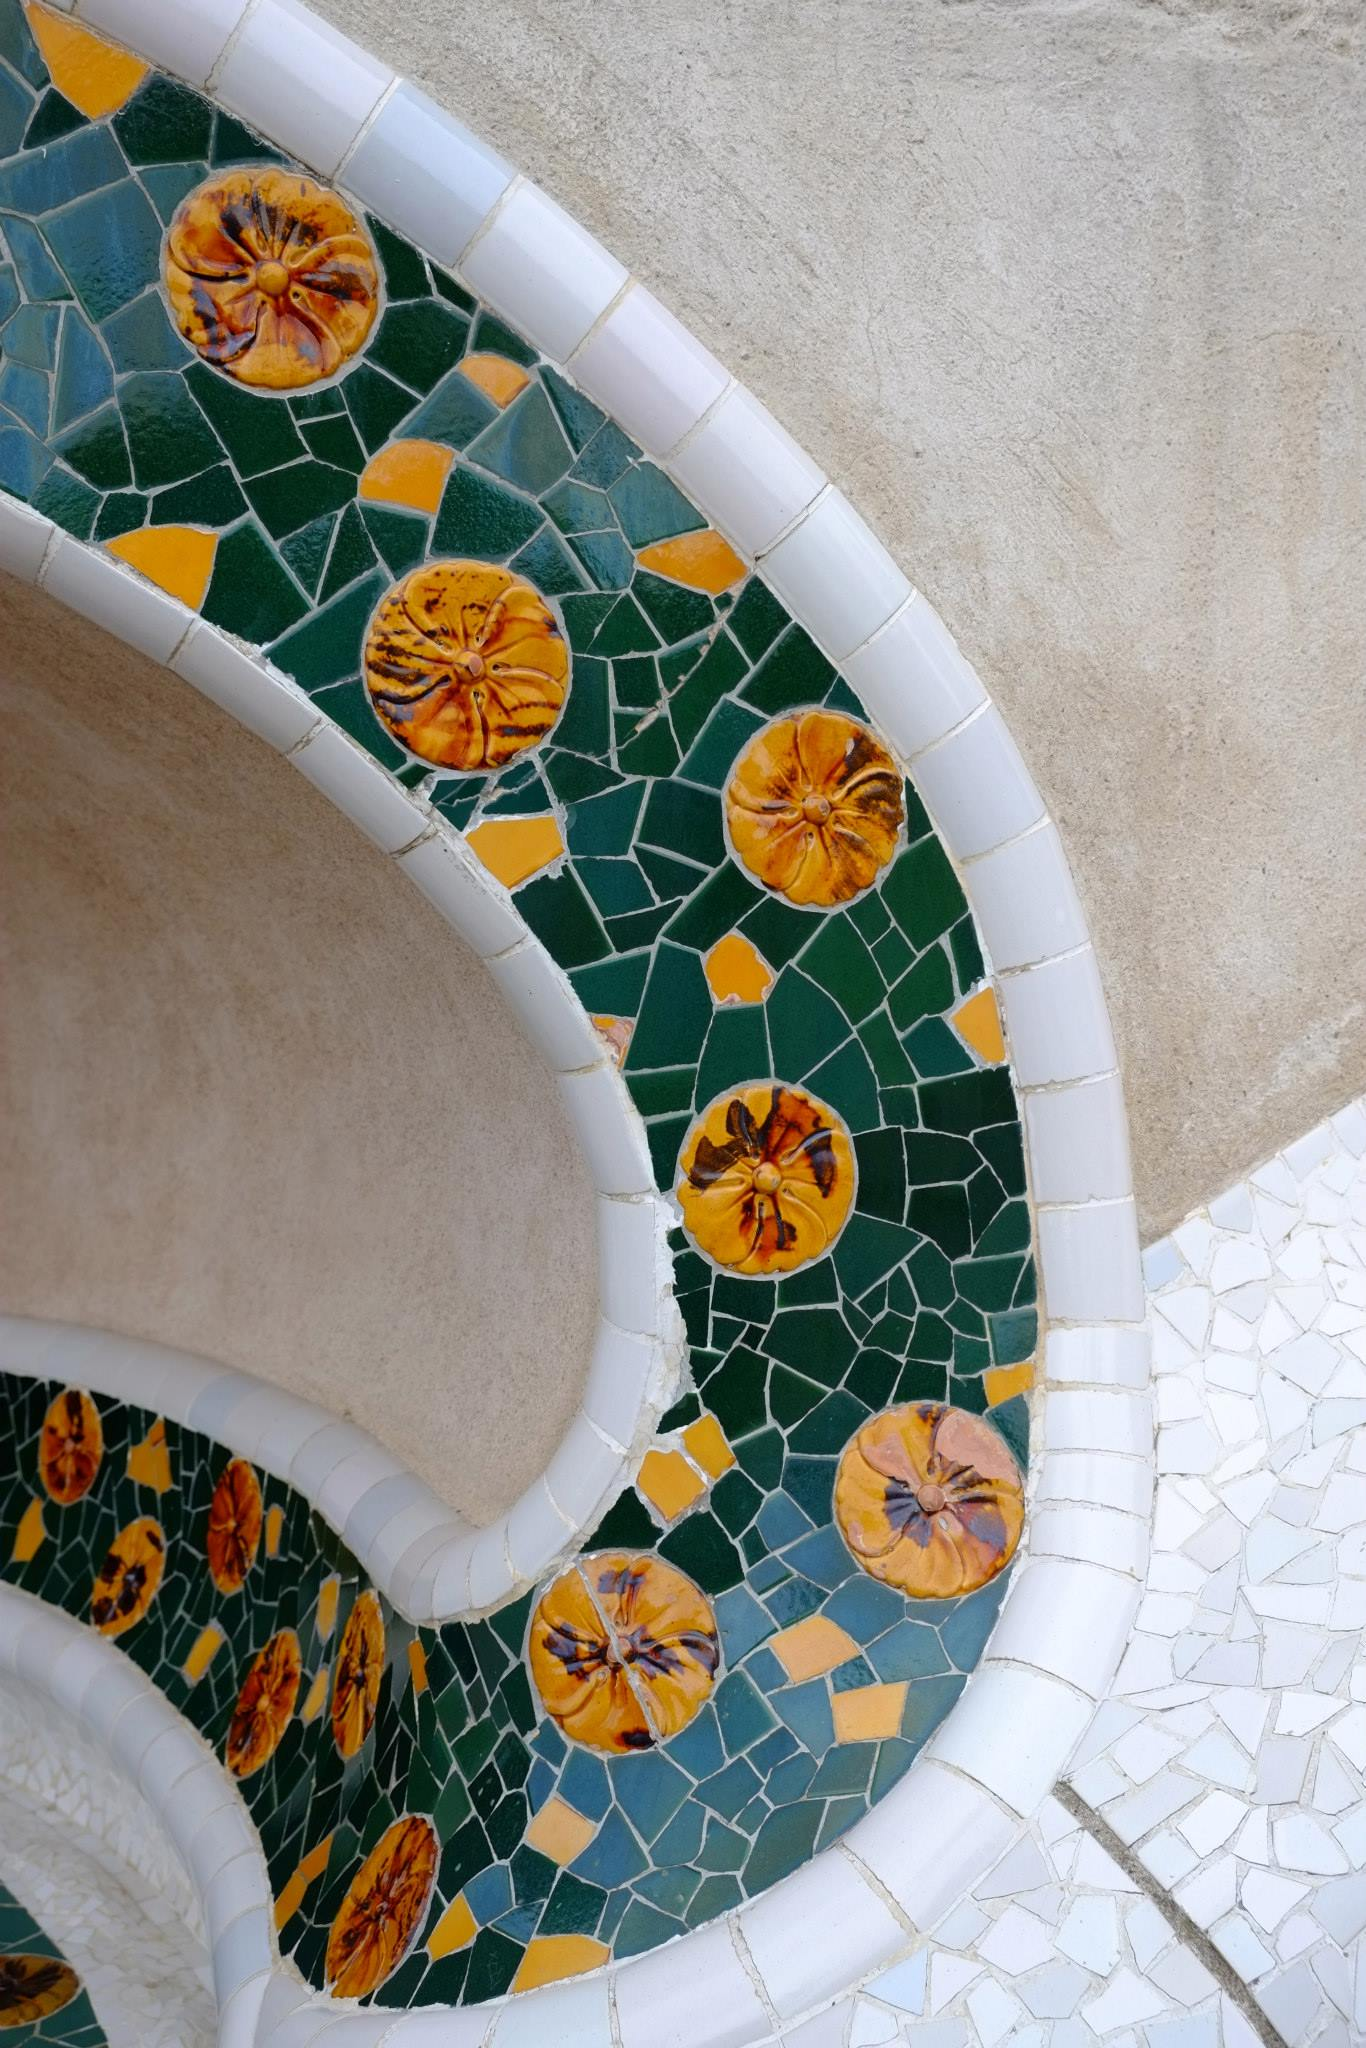 Tile Detail at Parc Guell